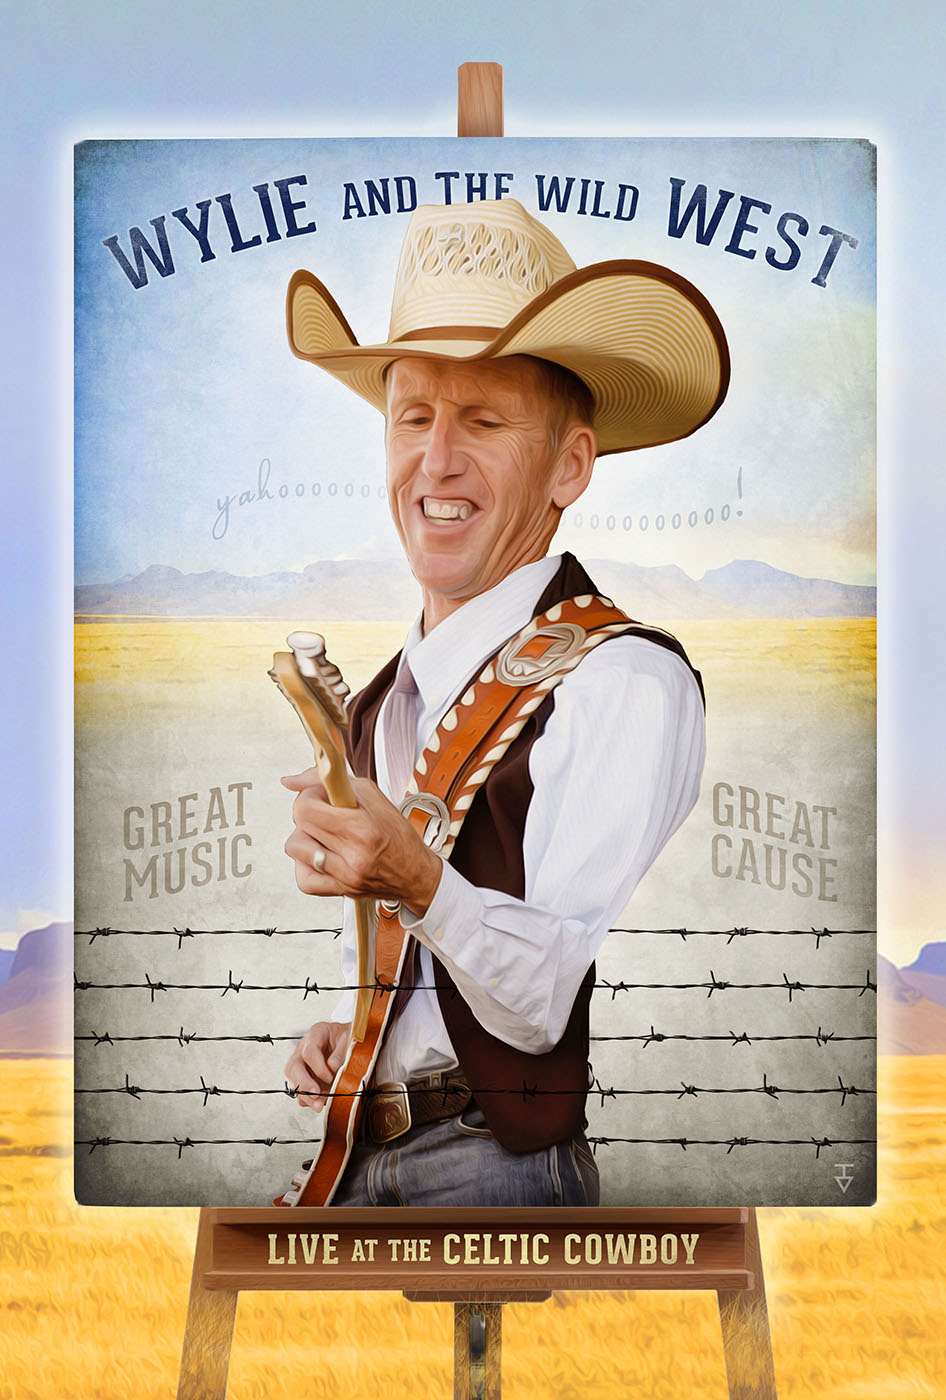 Wylie and the Wild West Poster